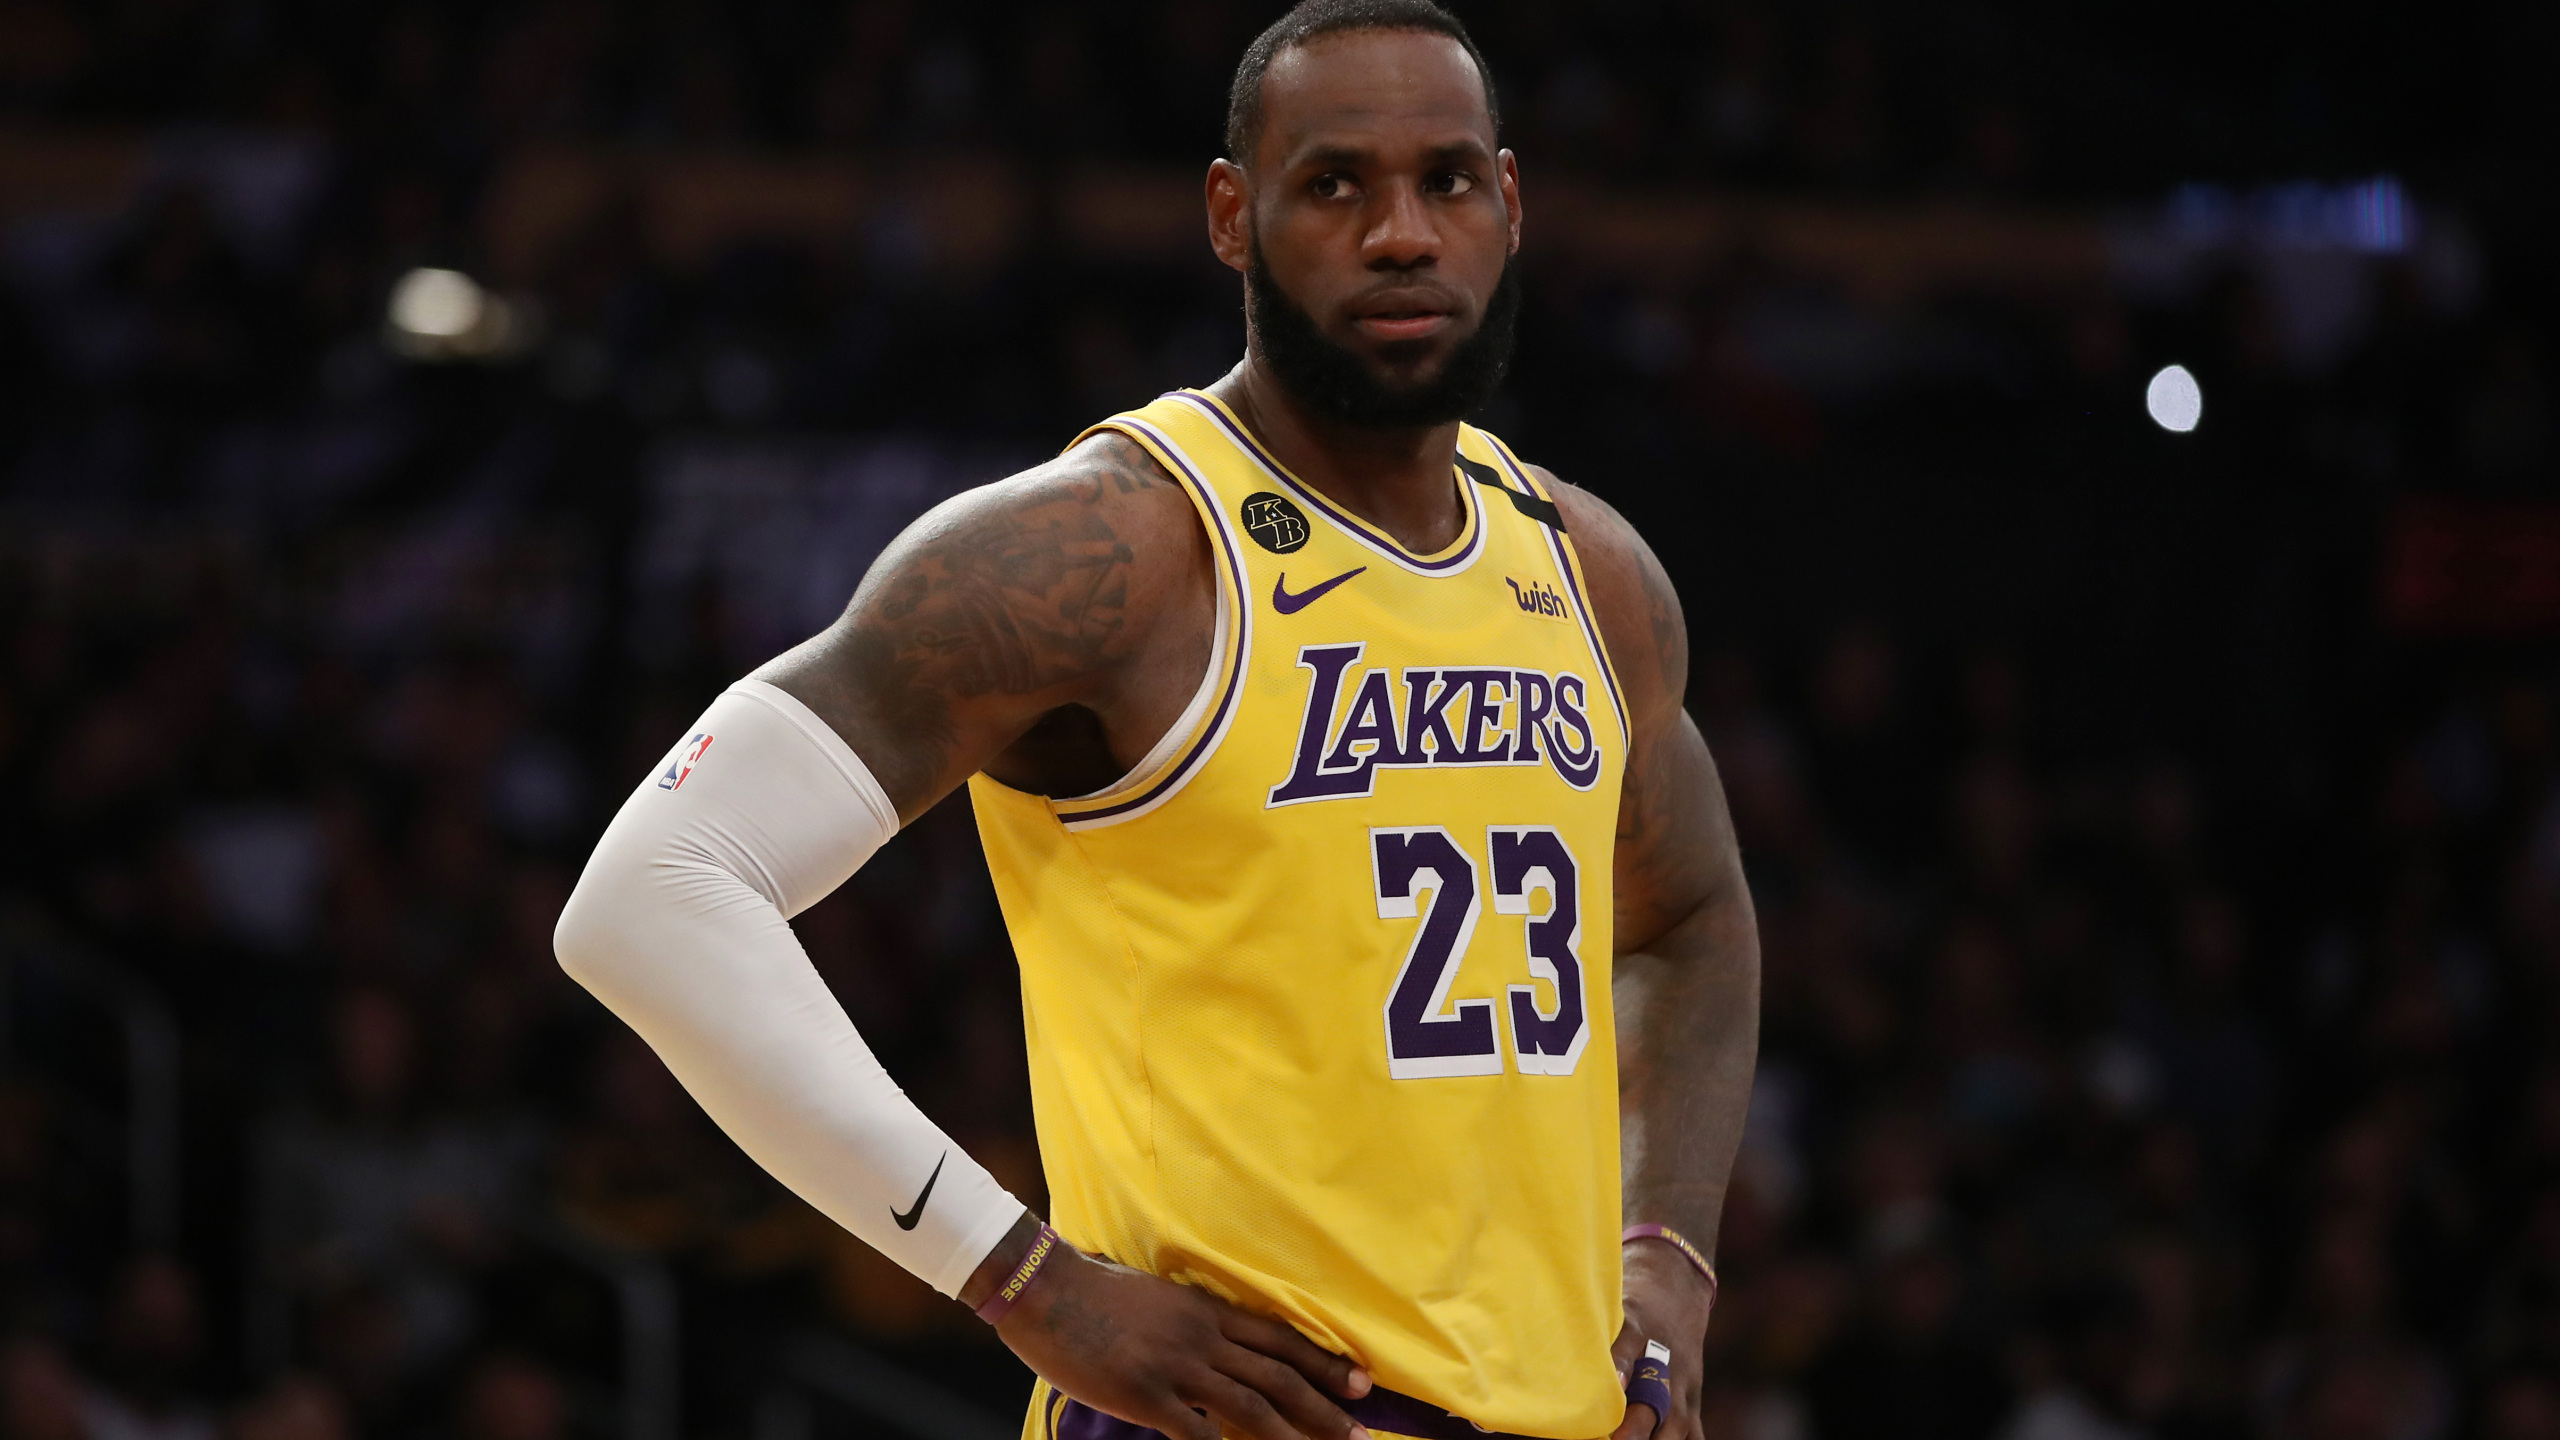 Nothing is normal in 2020 LeBron says from NBA bubble ahead of 2560x1440